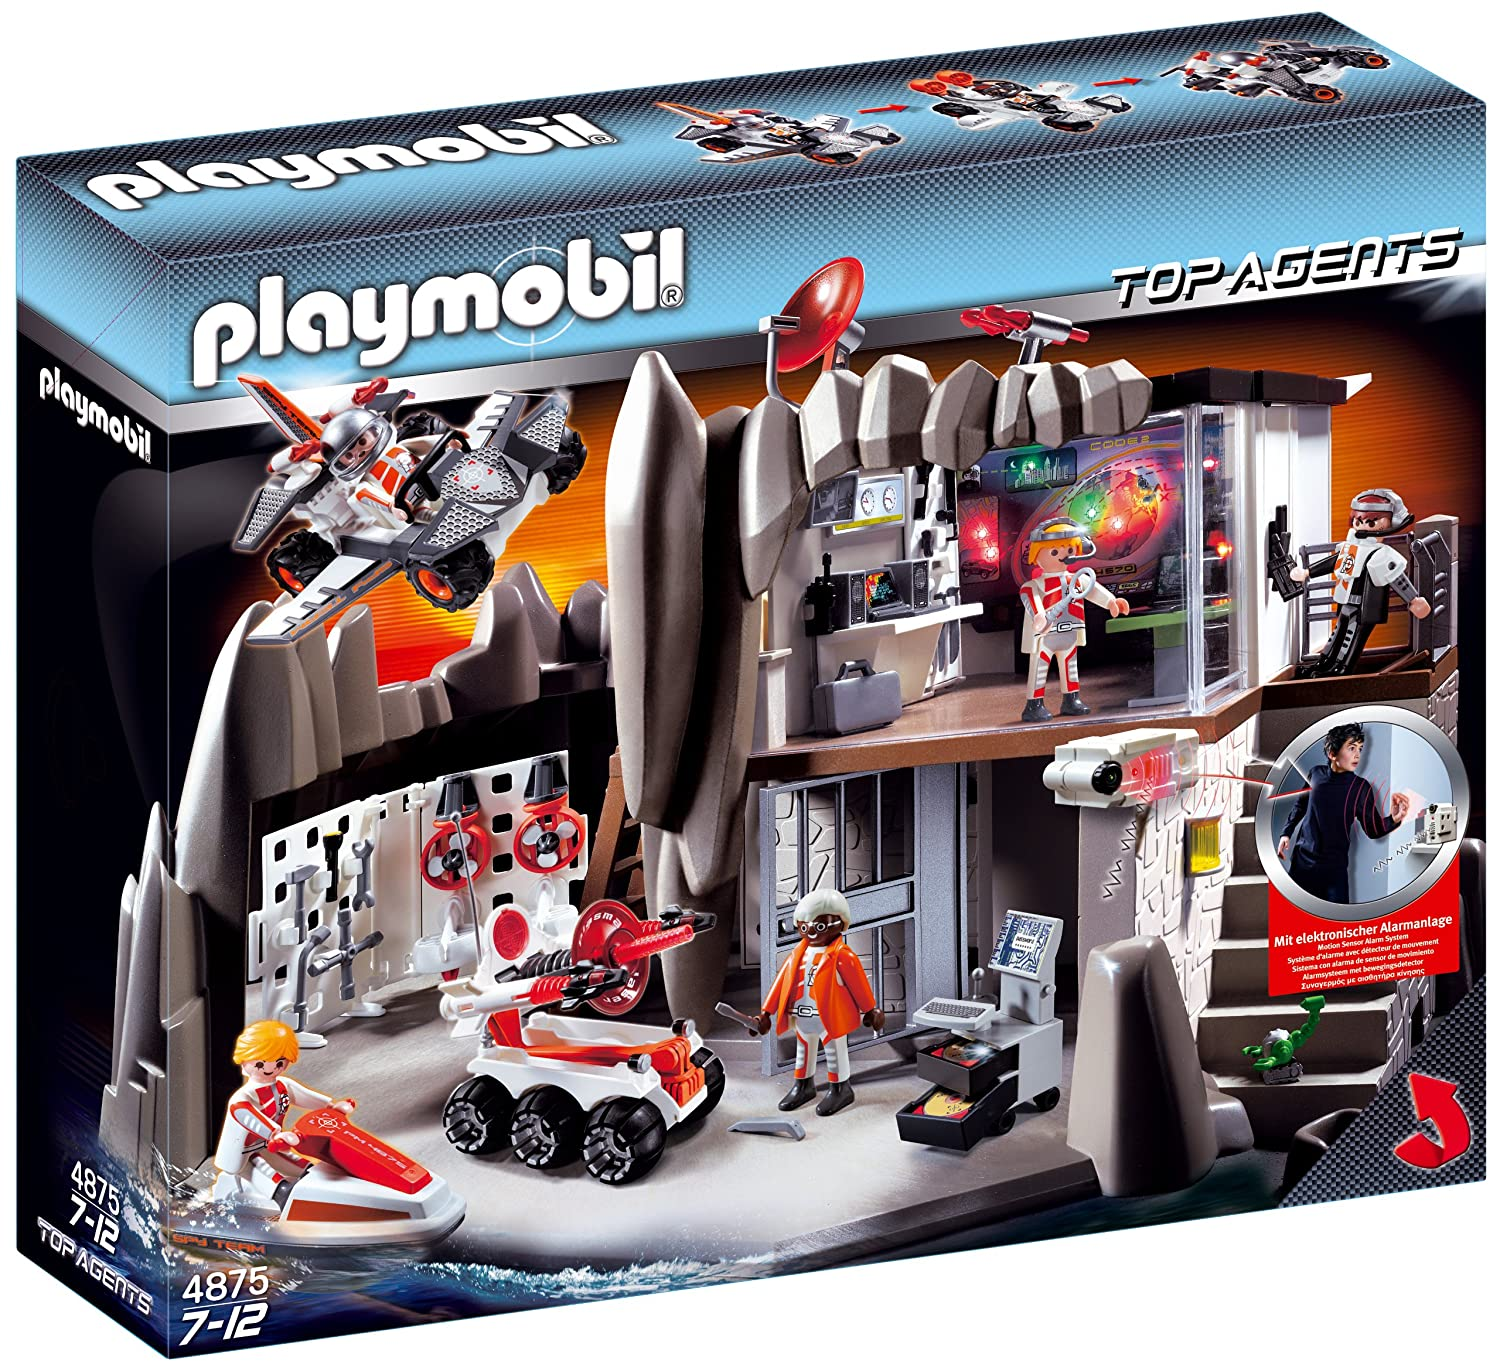 Amazon.com: PLAYMOBIL Secret Agent Headquarters with Alarm System: Toys & Games